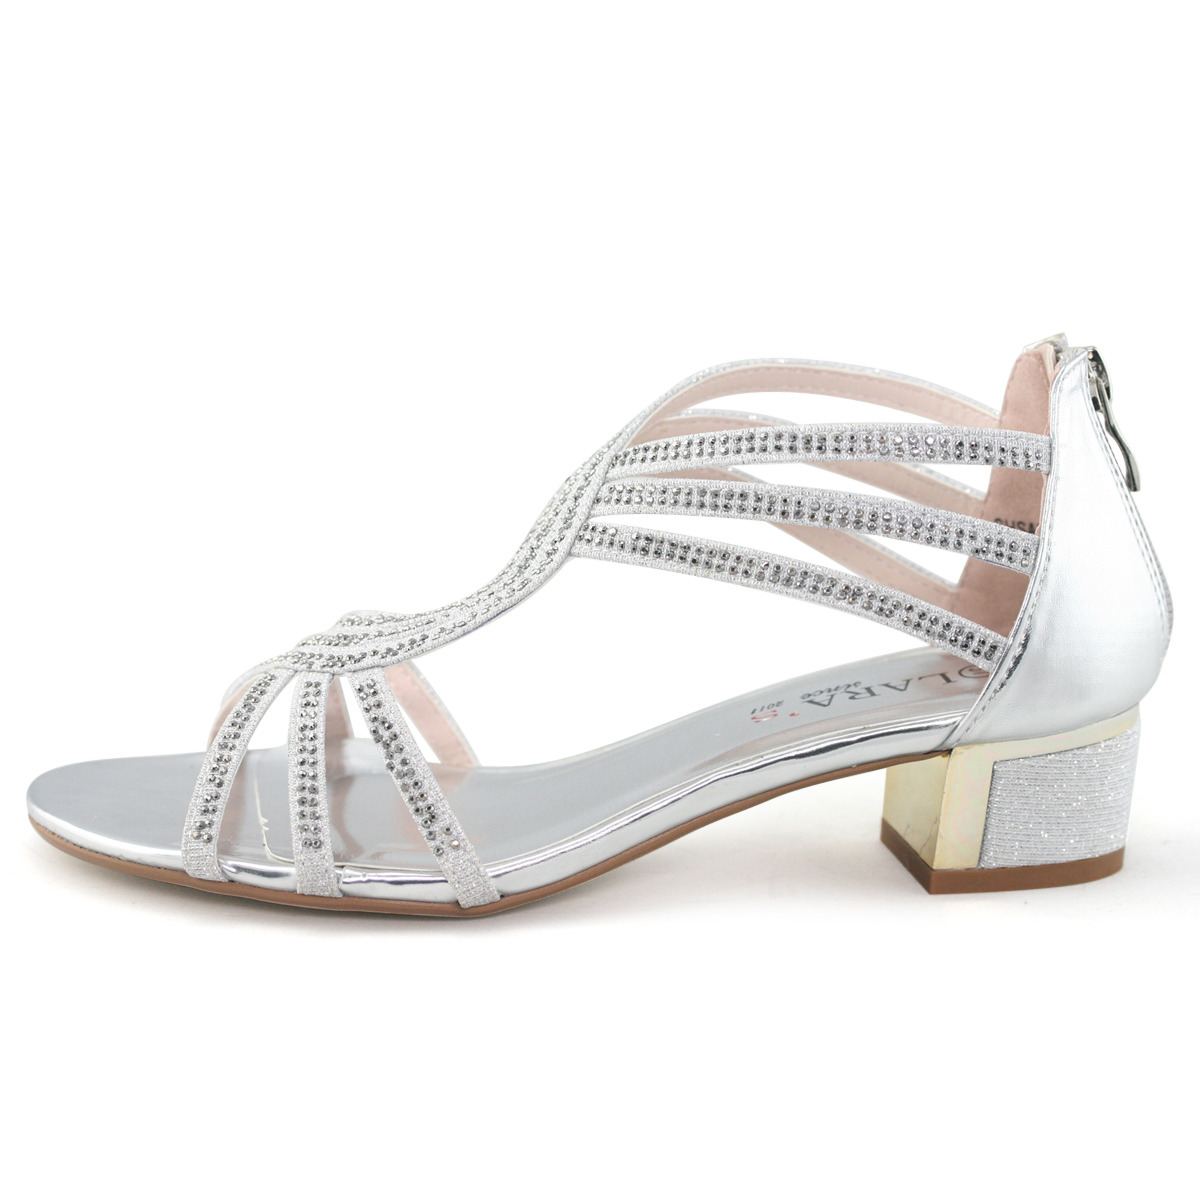 Wide Fit Silver Shoes Size